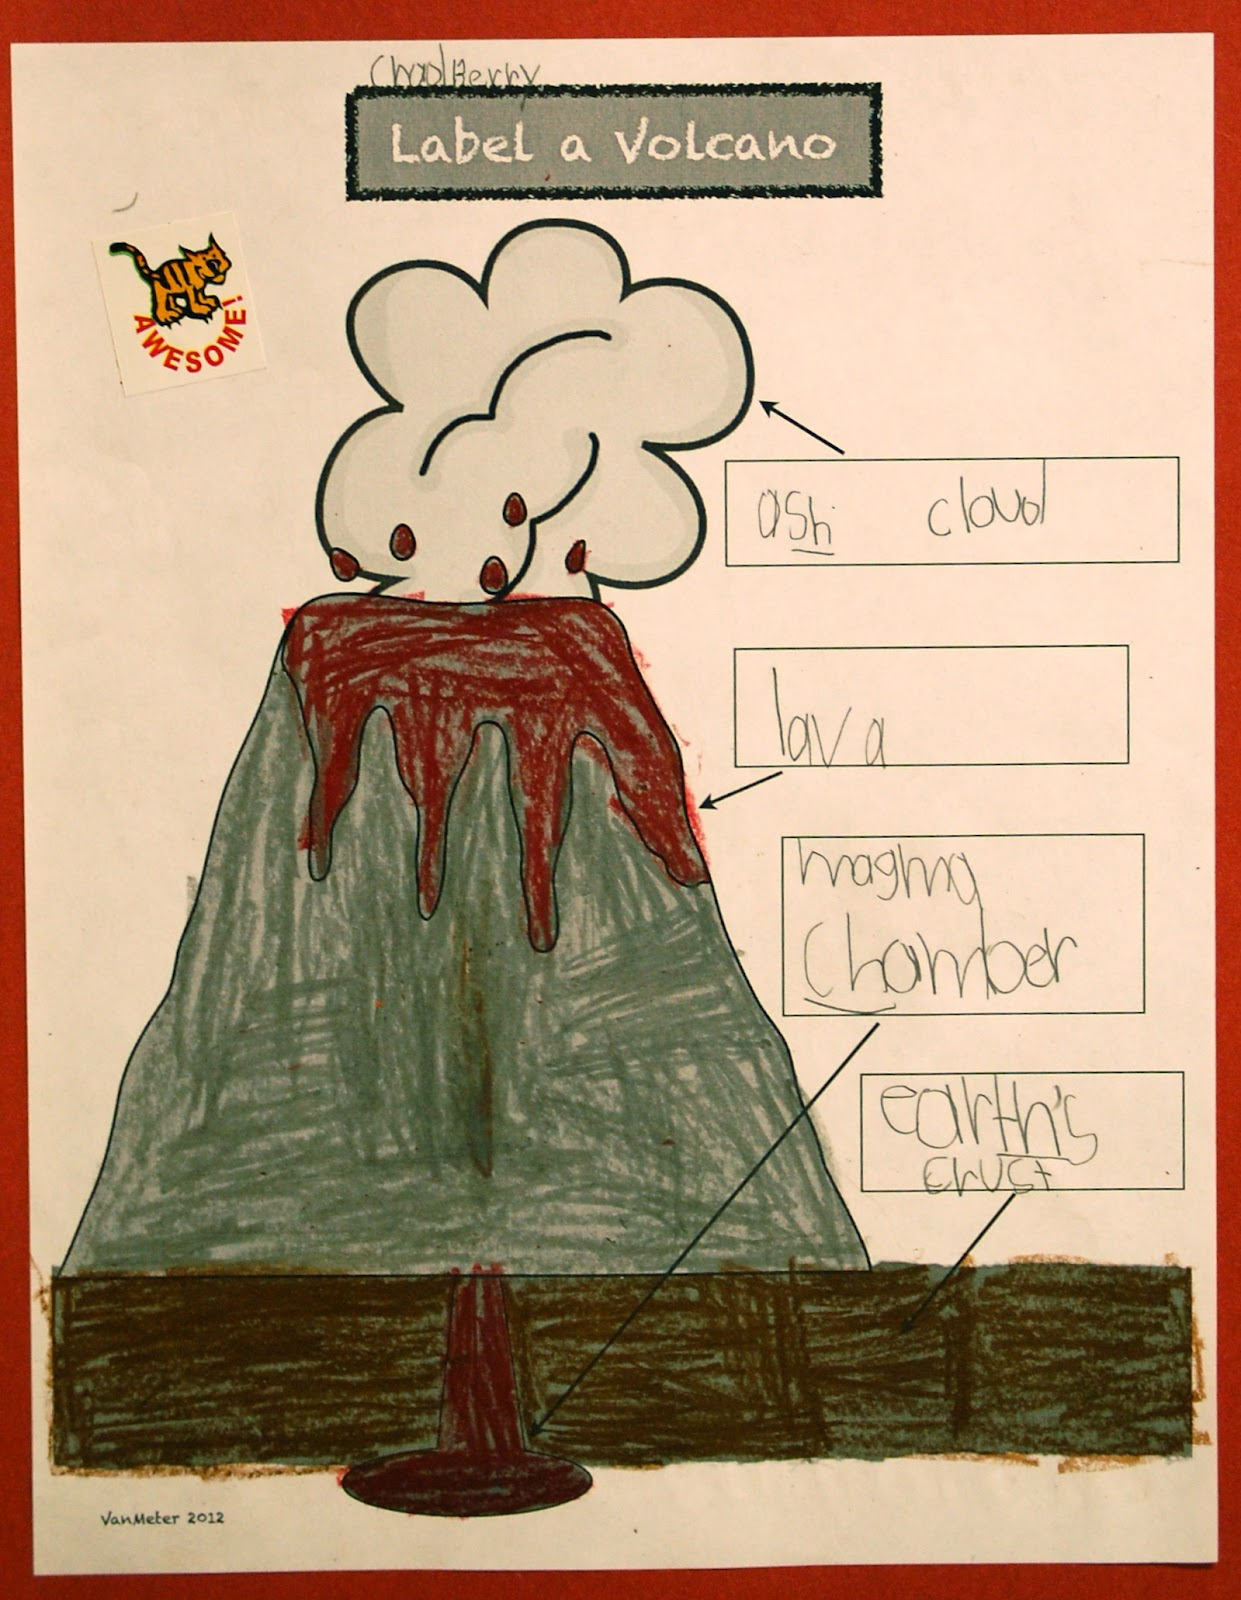 Stratovolcano Diagram With Labels 2002 Chevy Cavalier Exhaust System Volcano Label Cake Ideas And Designs